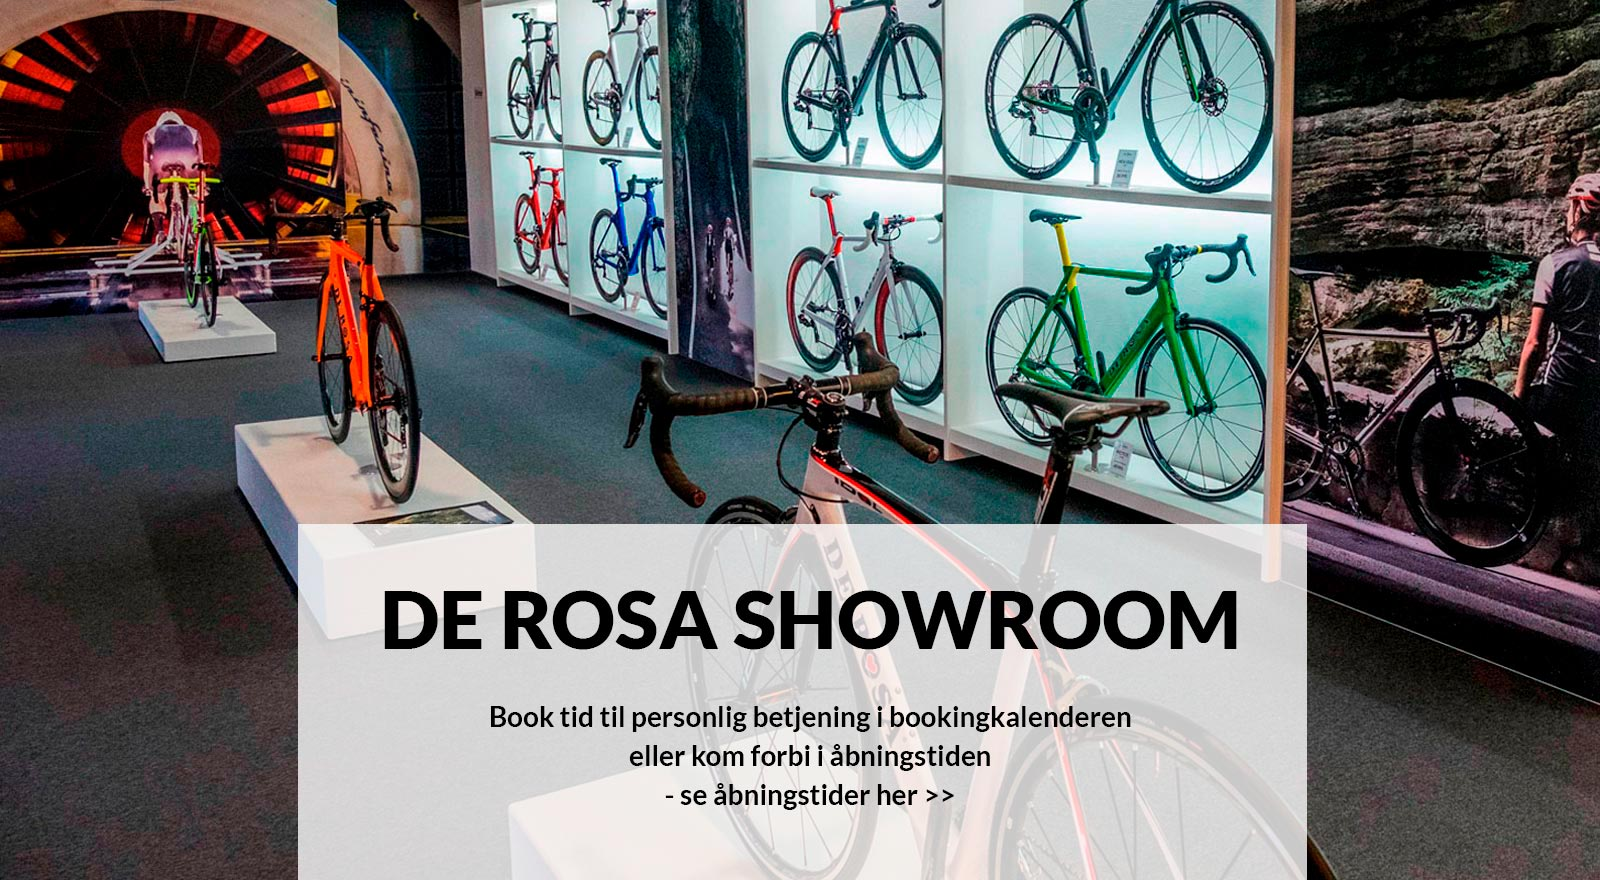 De rosa showroom 1600 txtny